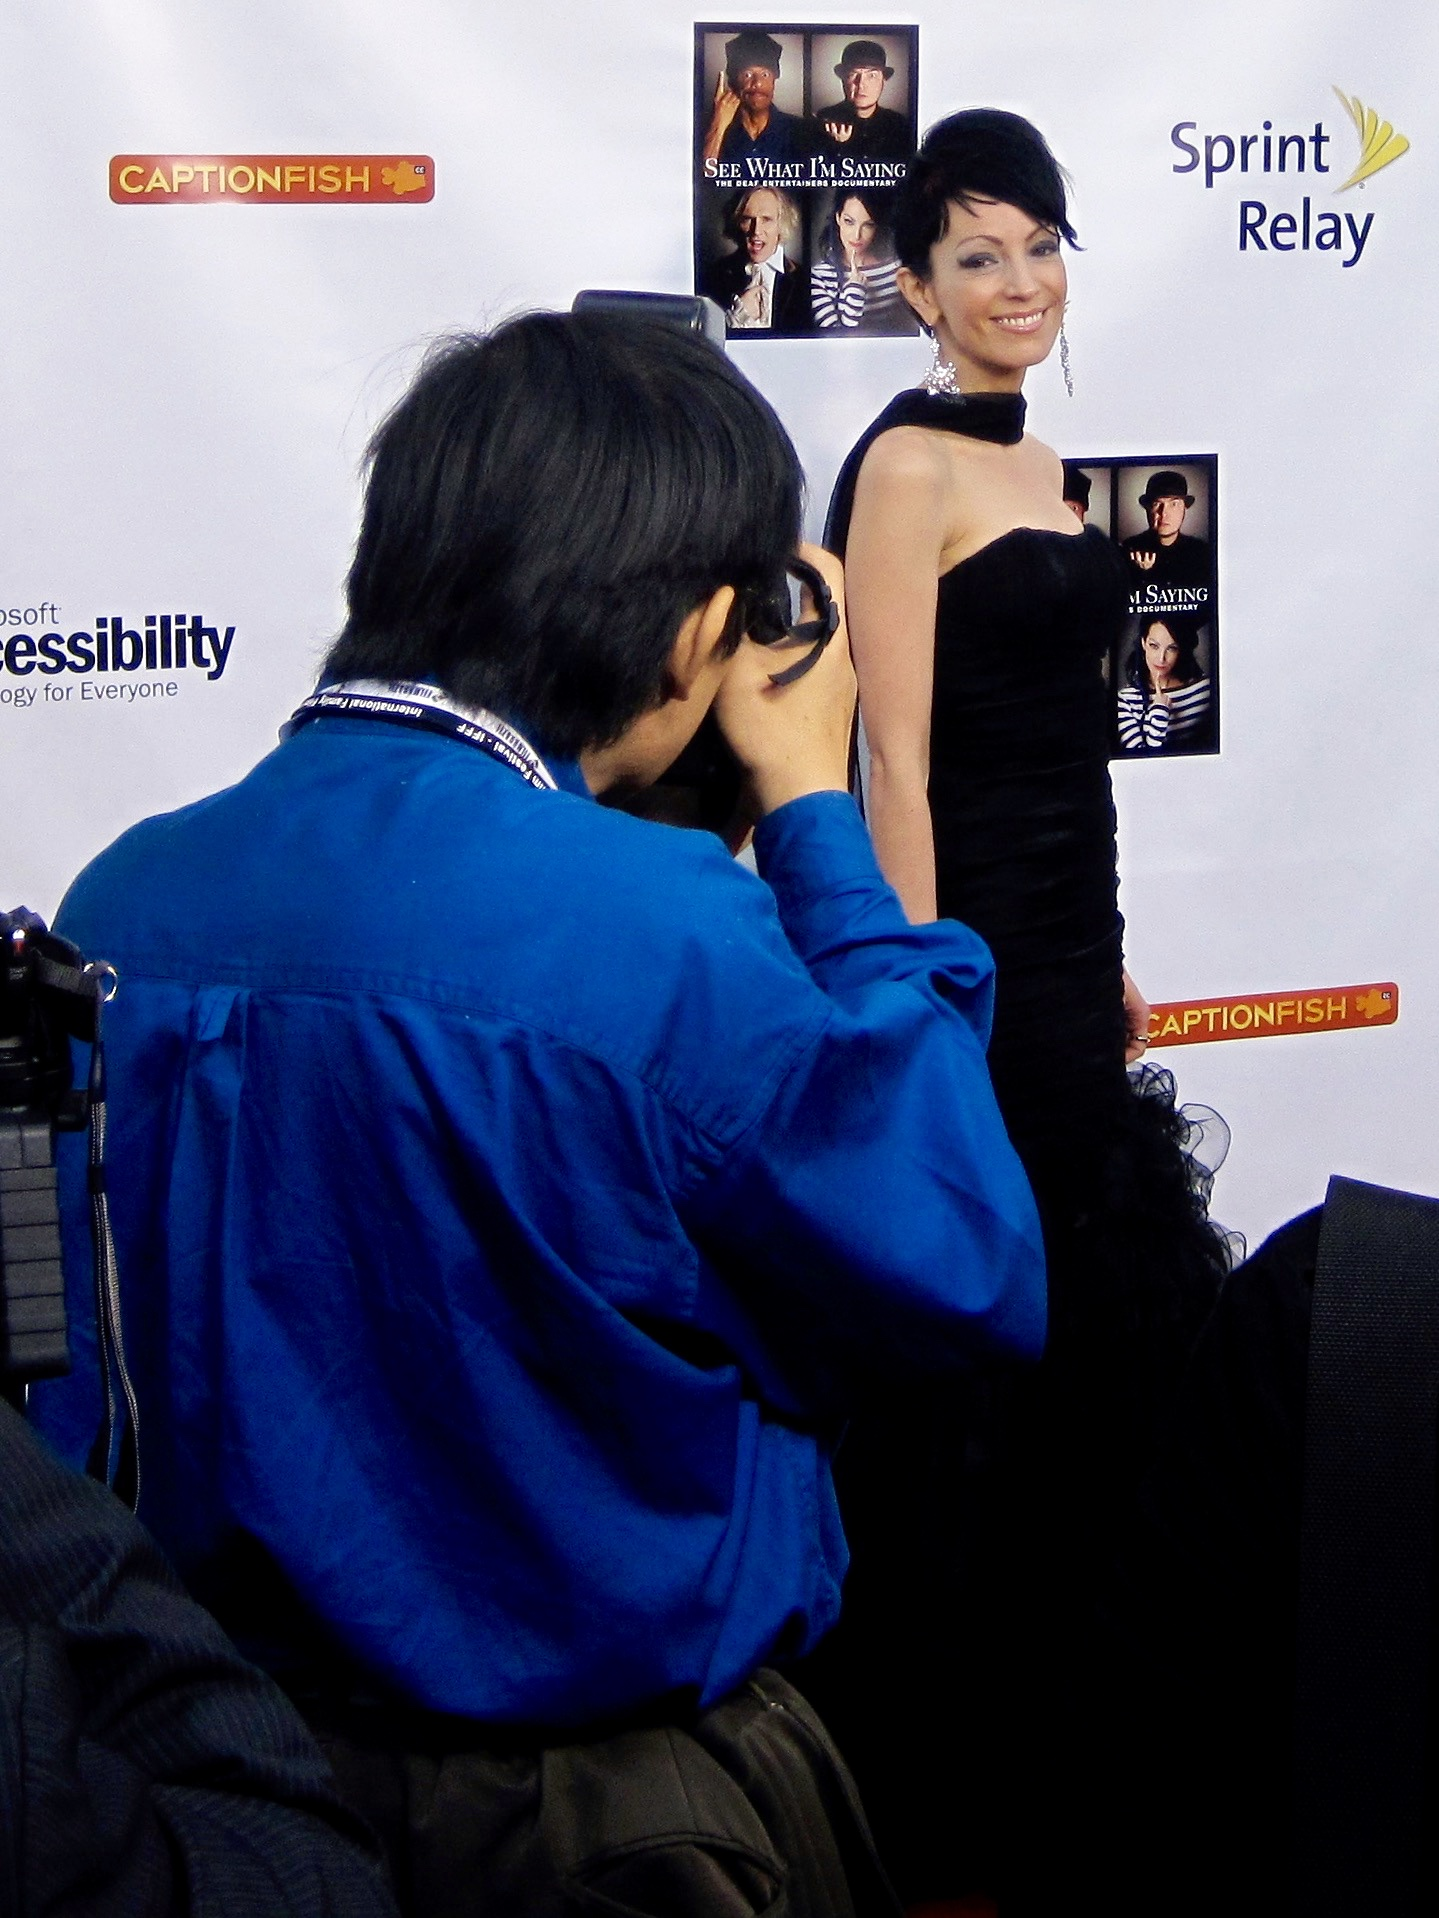 Rock artist TL Forsberg at the Egyptian Theatre for the premiere of Wordplay, Inc.'s feature documentary  See What I'm Saying , directed by Hilari Scarl.  Photo by John Drouillard.